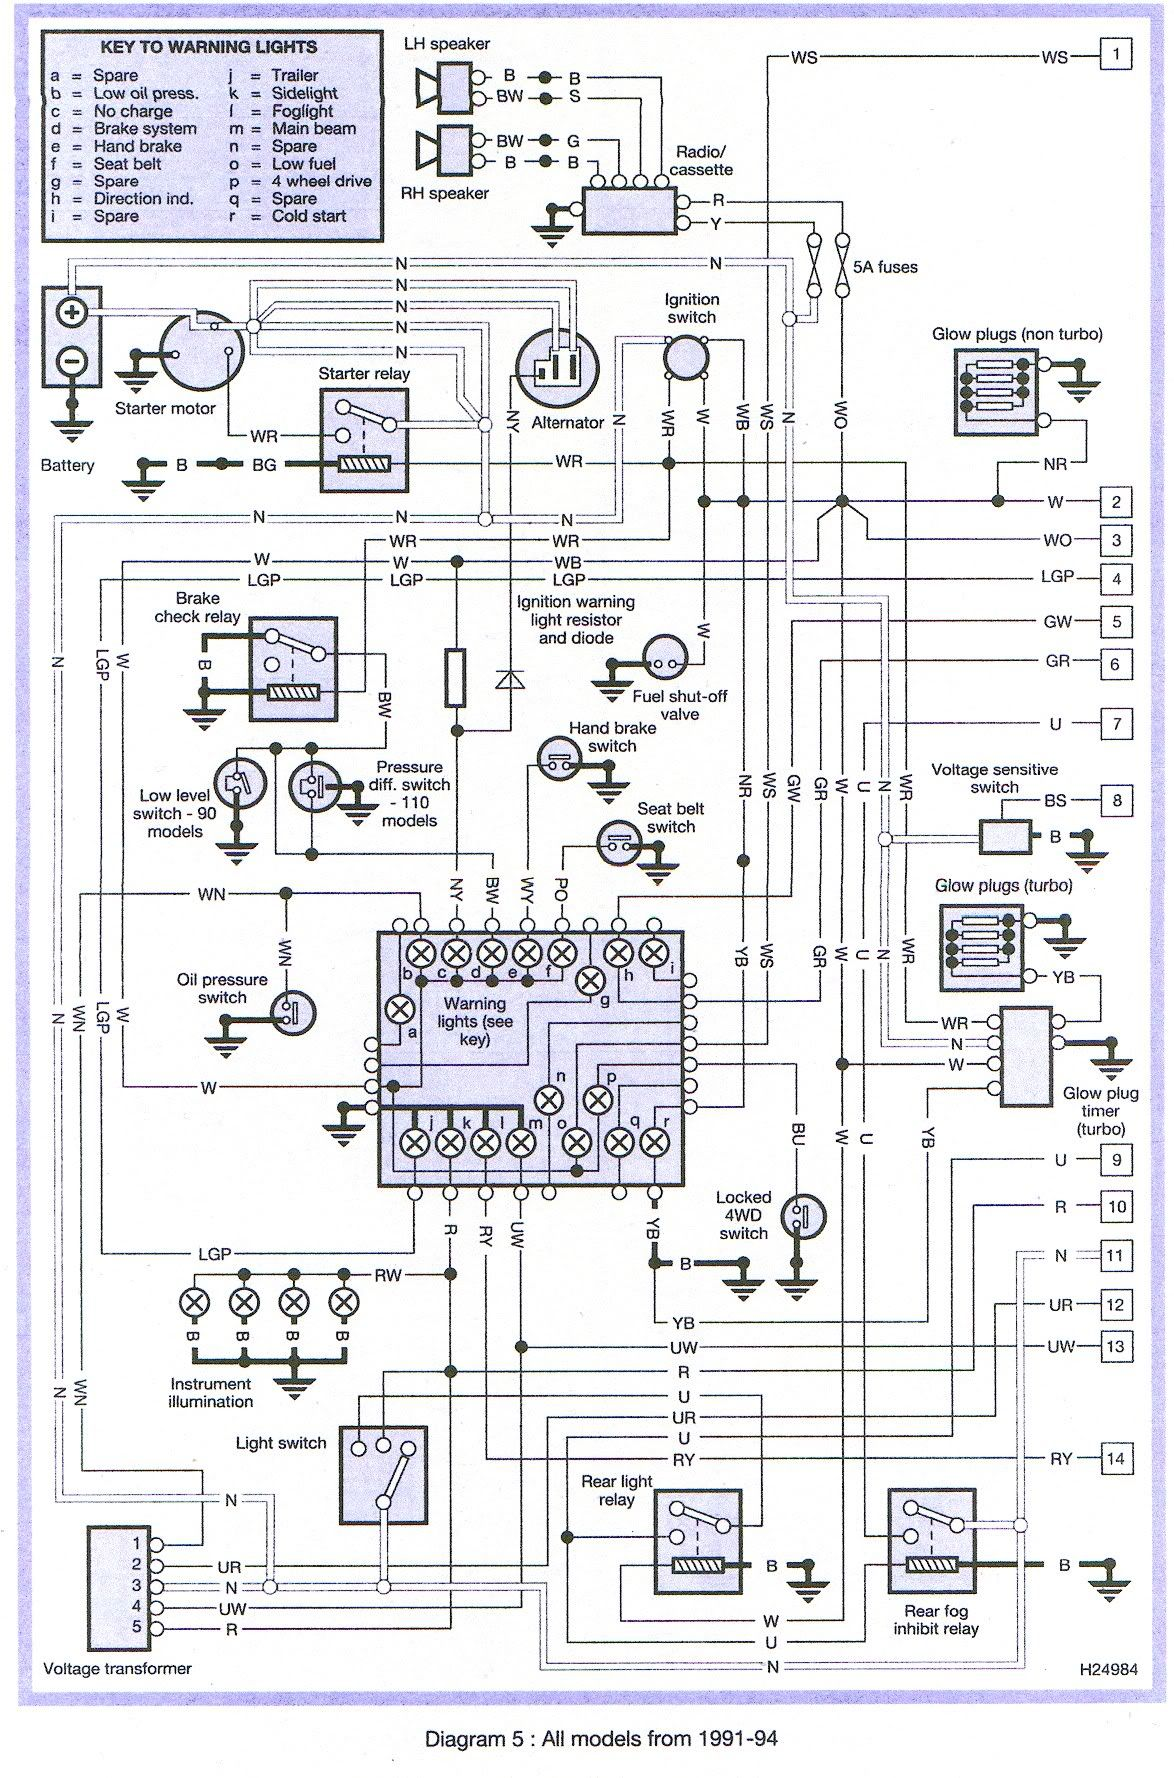 land rover discovery wiring diagram manual repair with engine rh pinterest com 2004 Ford Explorer Wiring Diagram 2004 Honda Accord Wiring Diagram